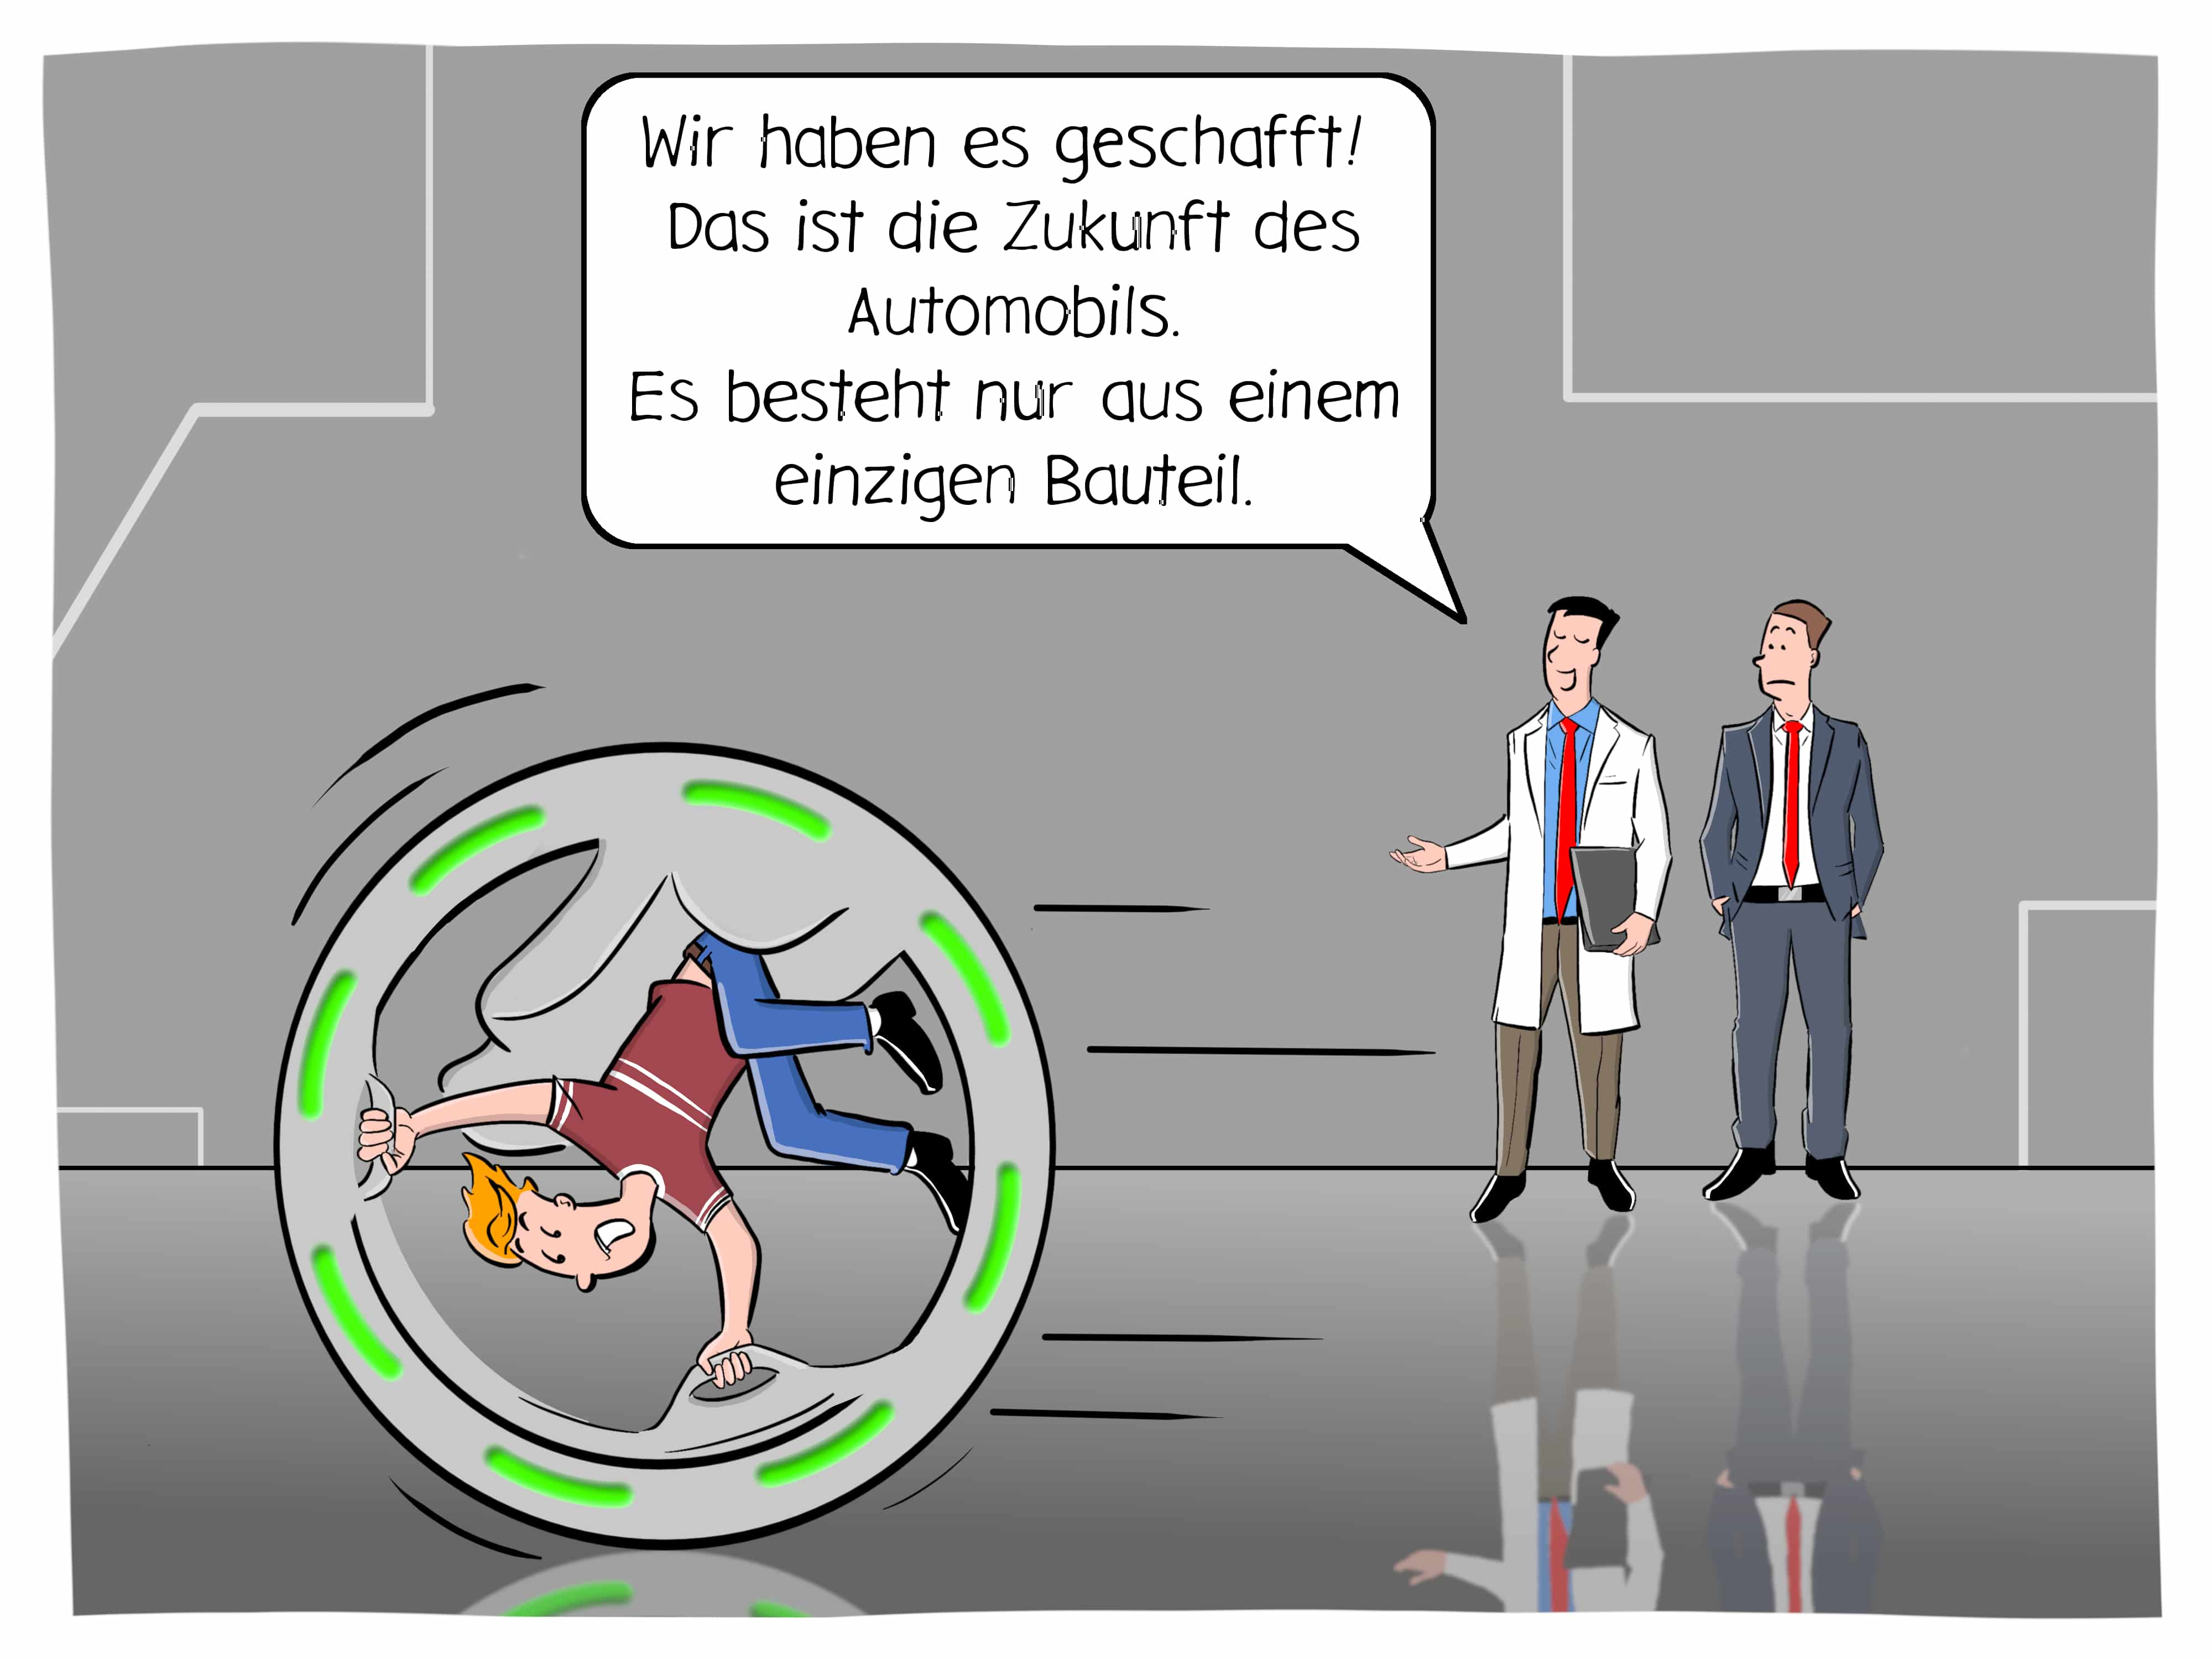 Automobilbranche Zukunft additive Fertigung Elektroantrieb eAuto Bauteile Cartoon Karikatur illustration